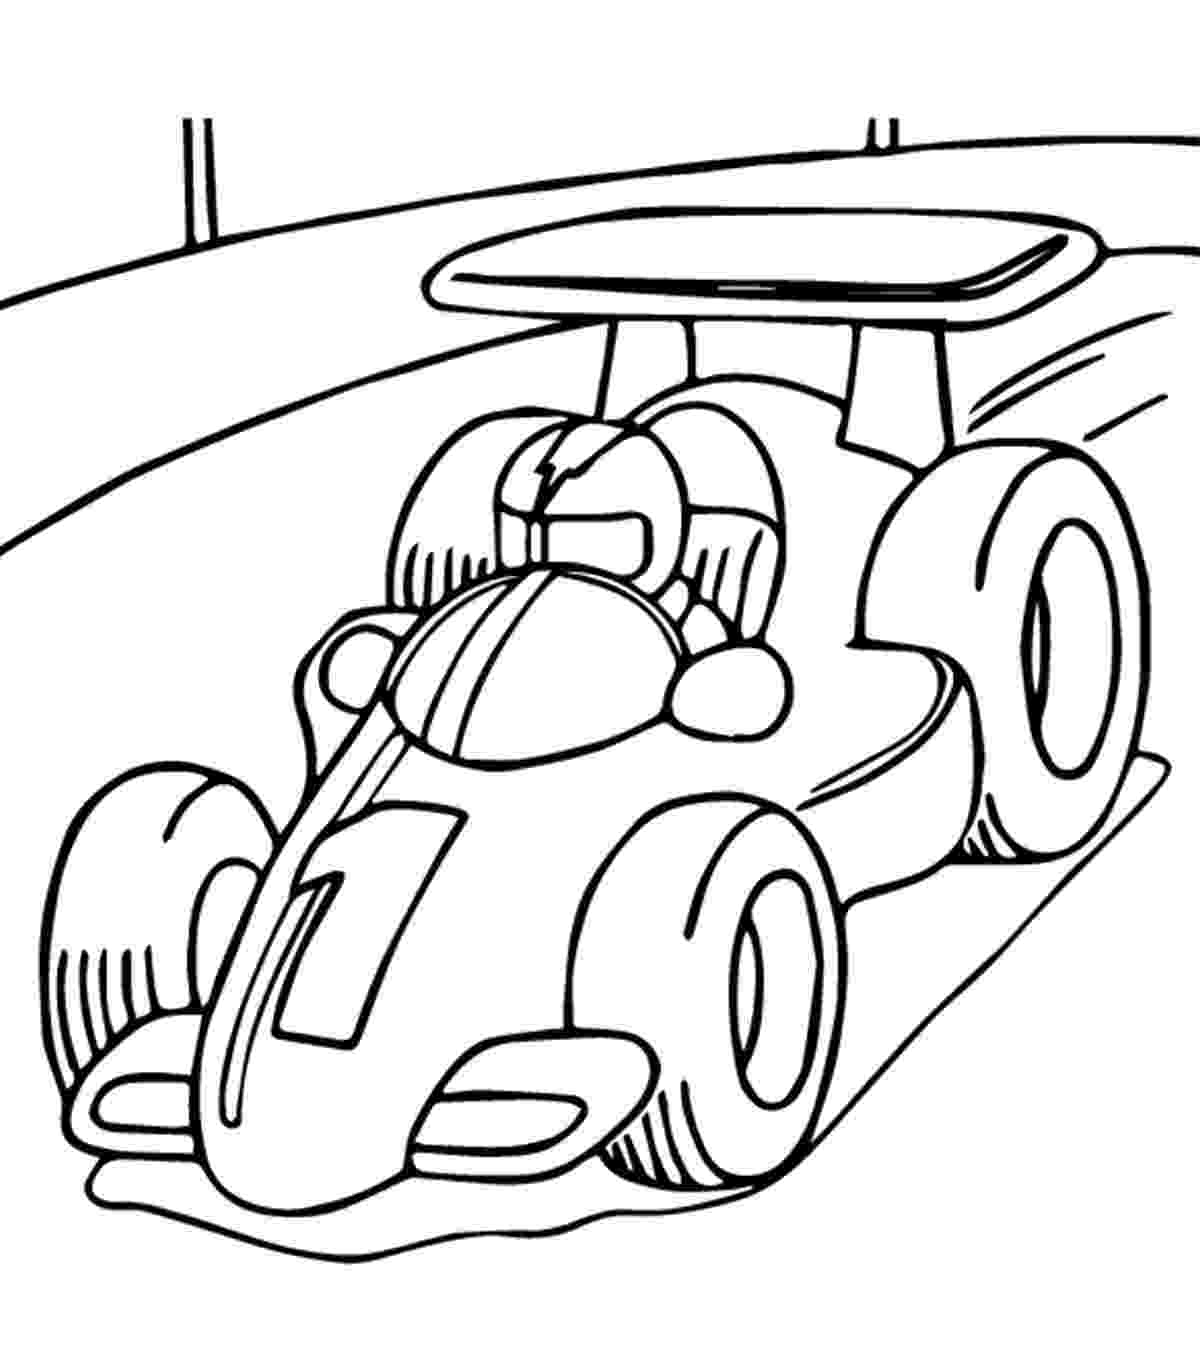 cars coloring book learn to coloring april 2011 coloring cars book